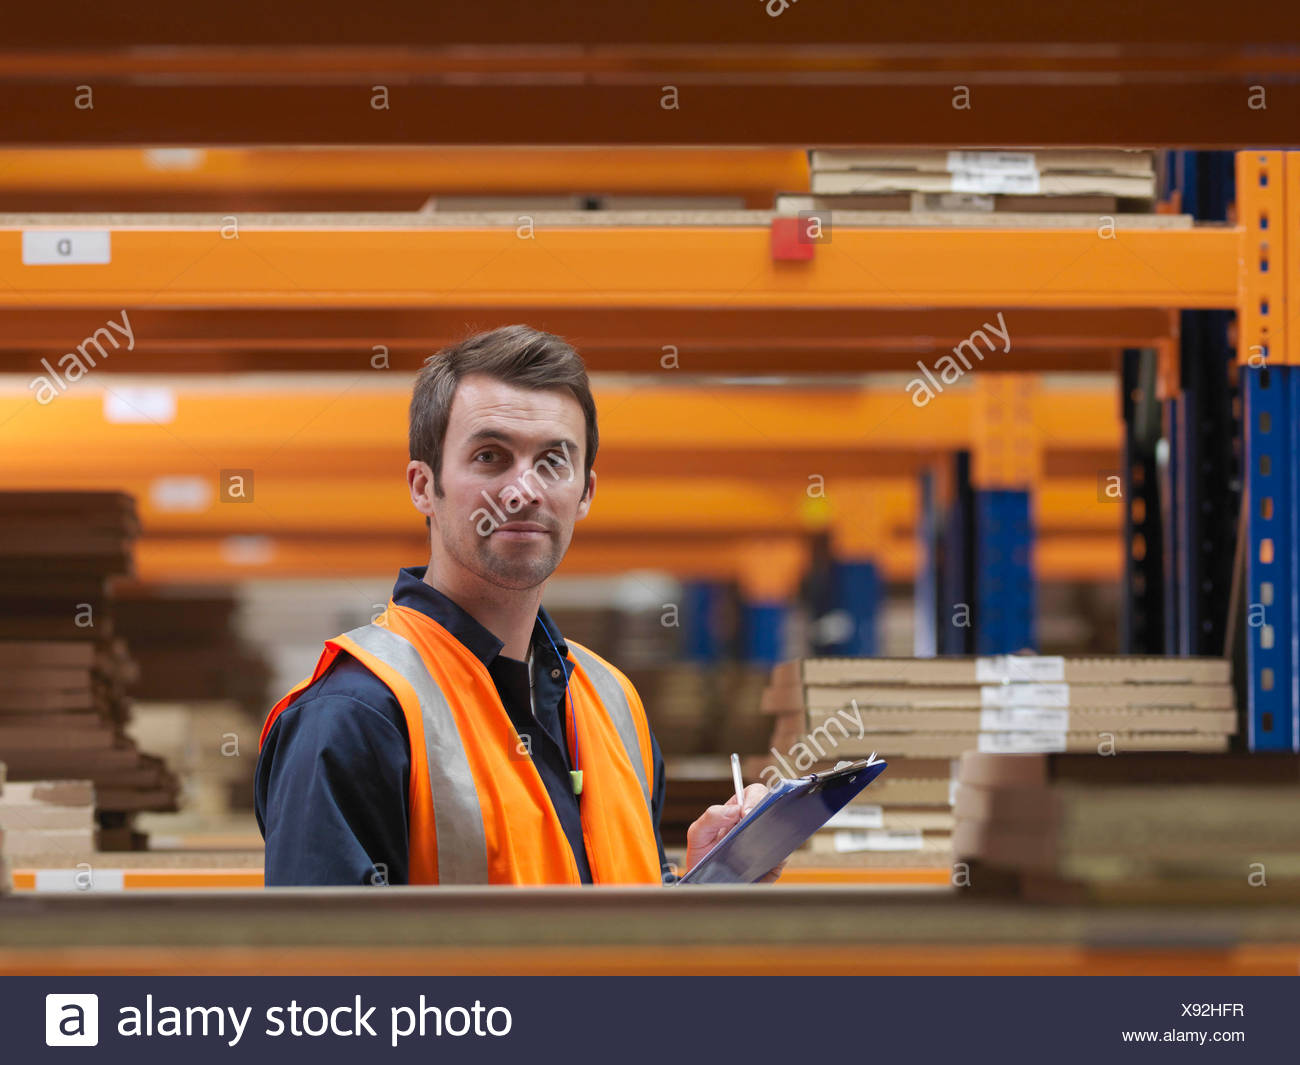 Worker In Aisle Of Warehouse Stock Photo